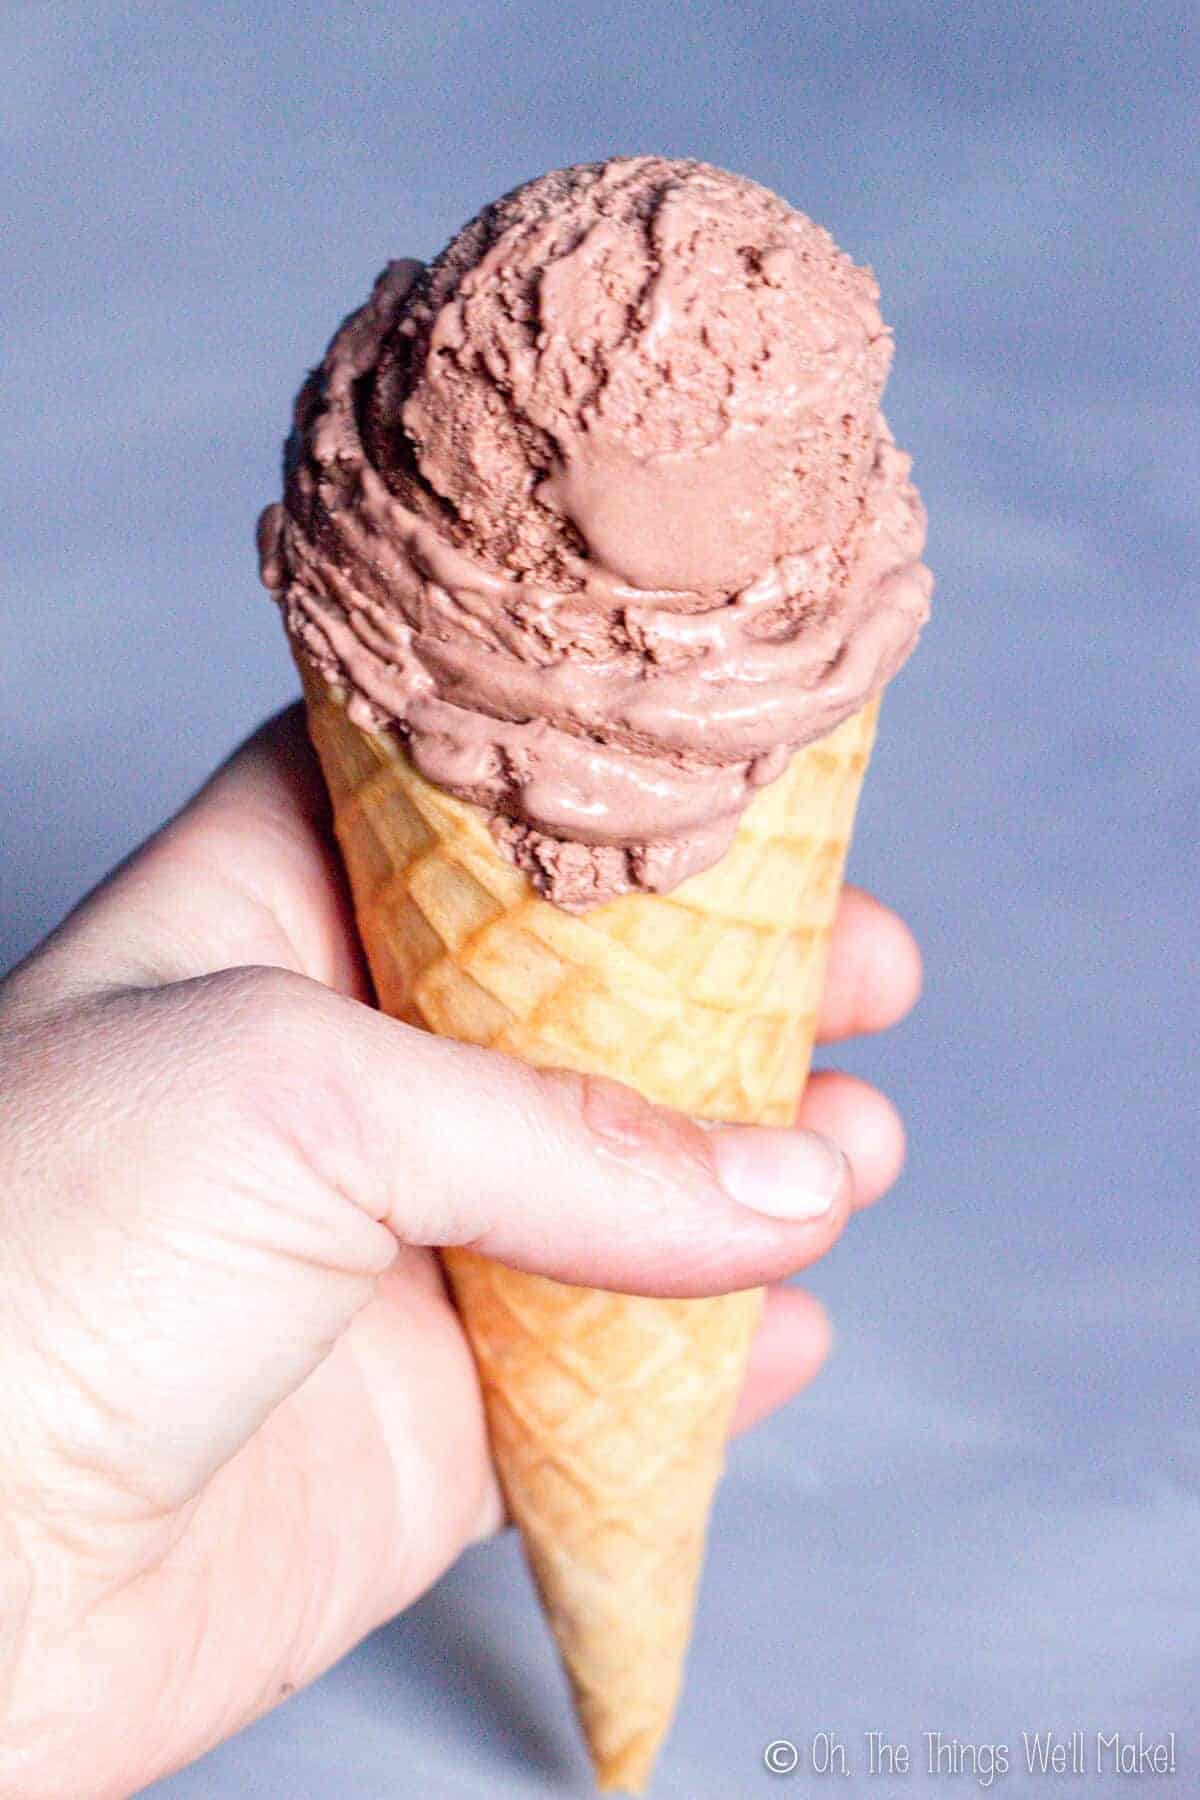 Closeup of a hand holding a chocolate ice cream cone in a homemade waffle cone.